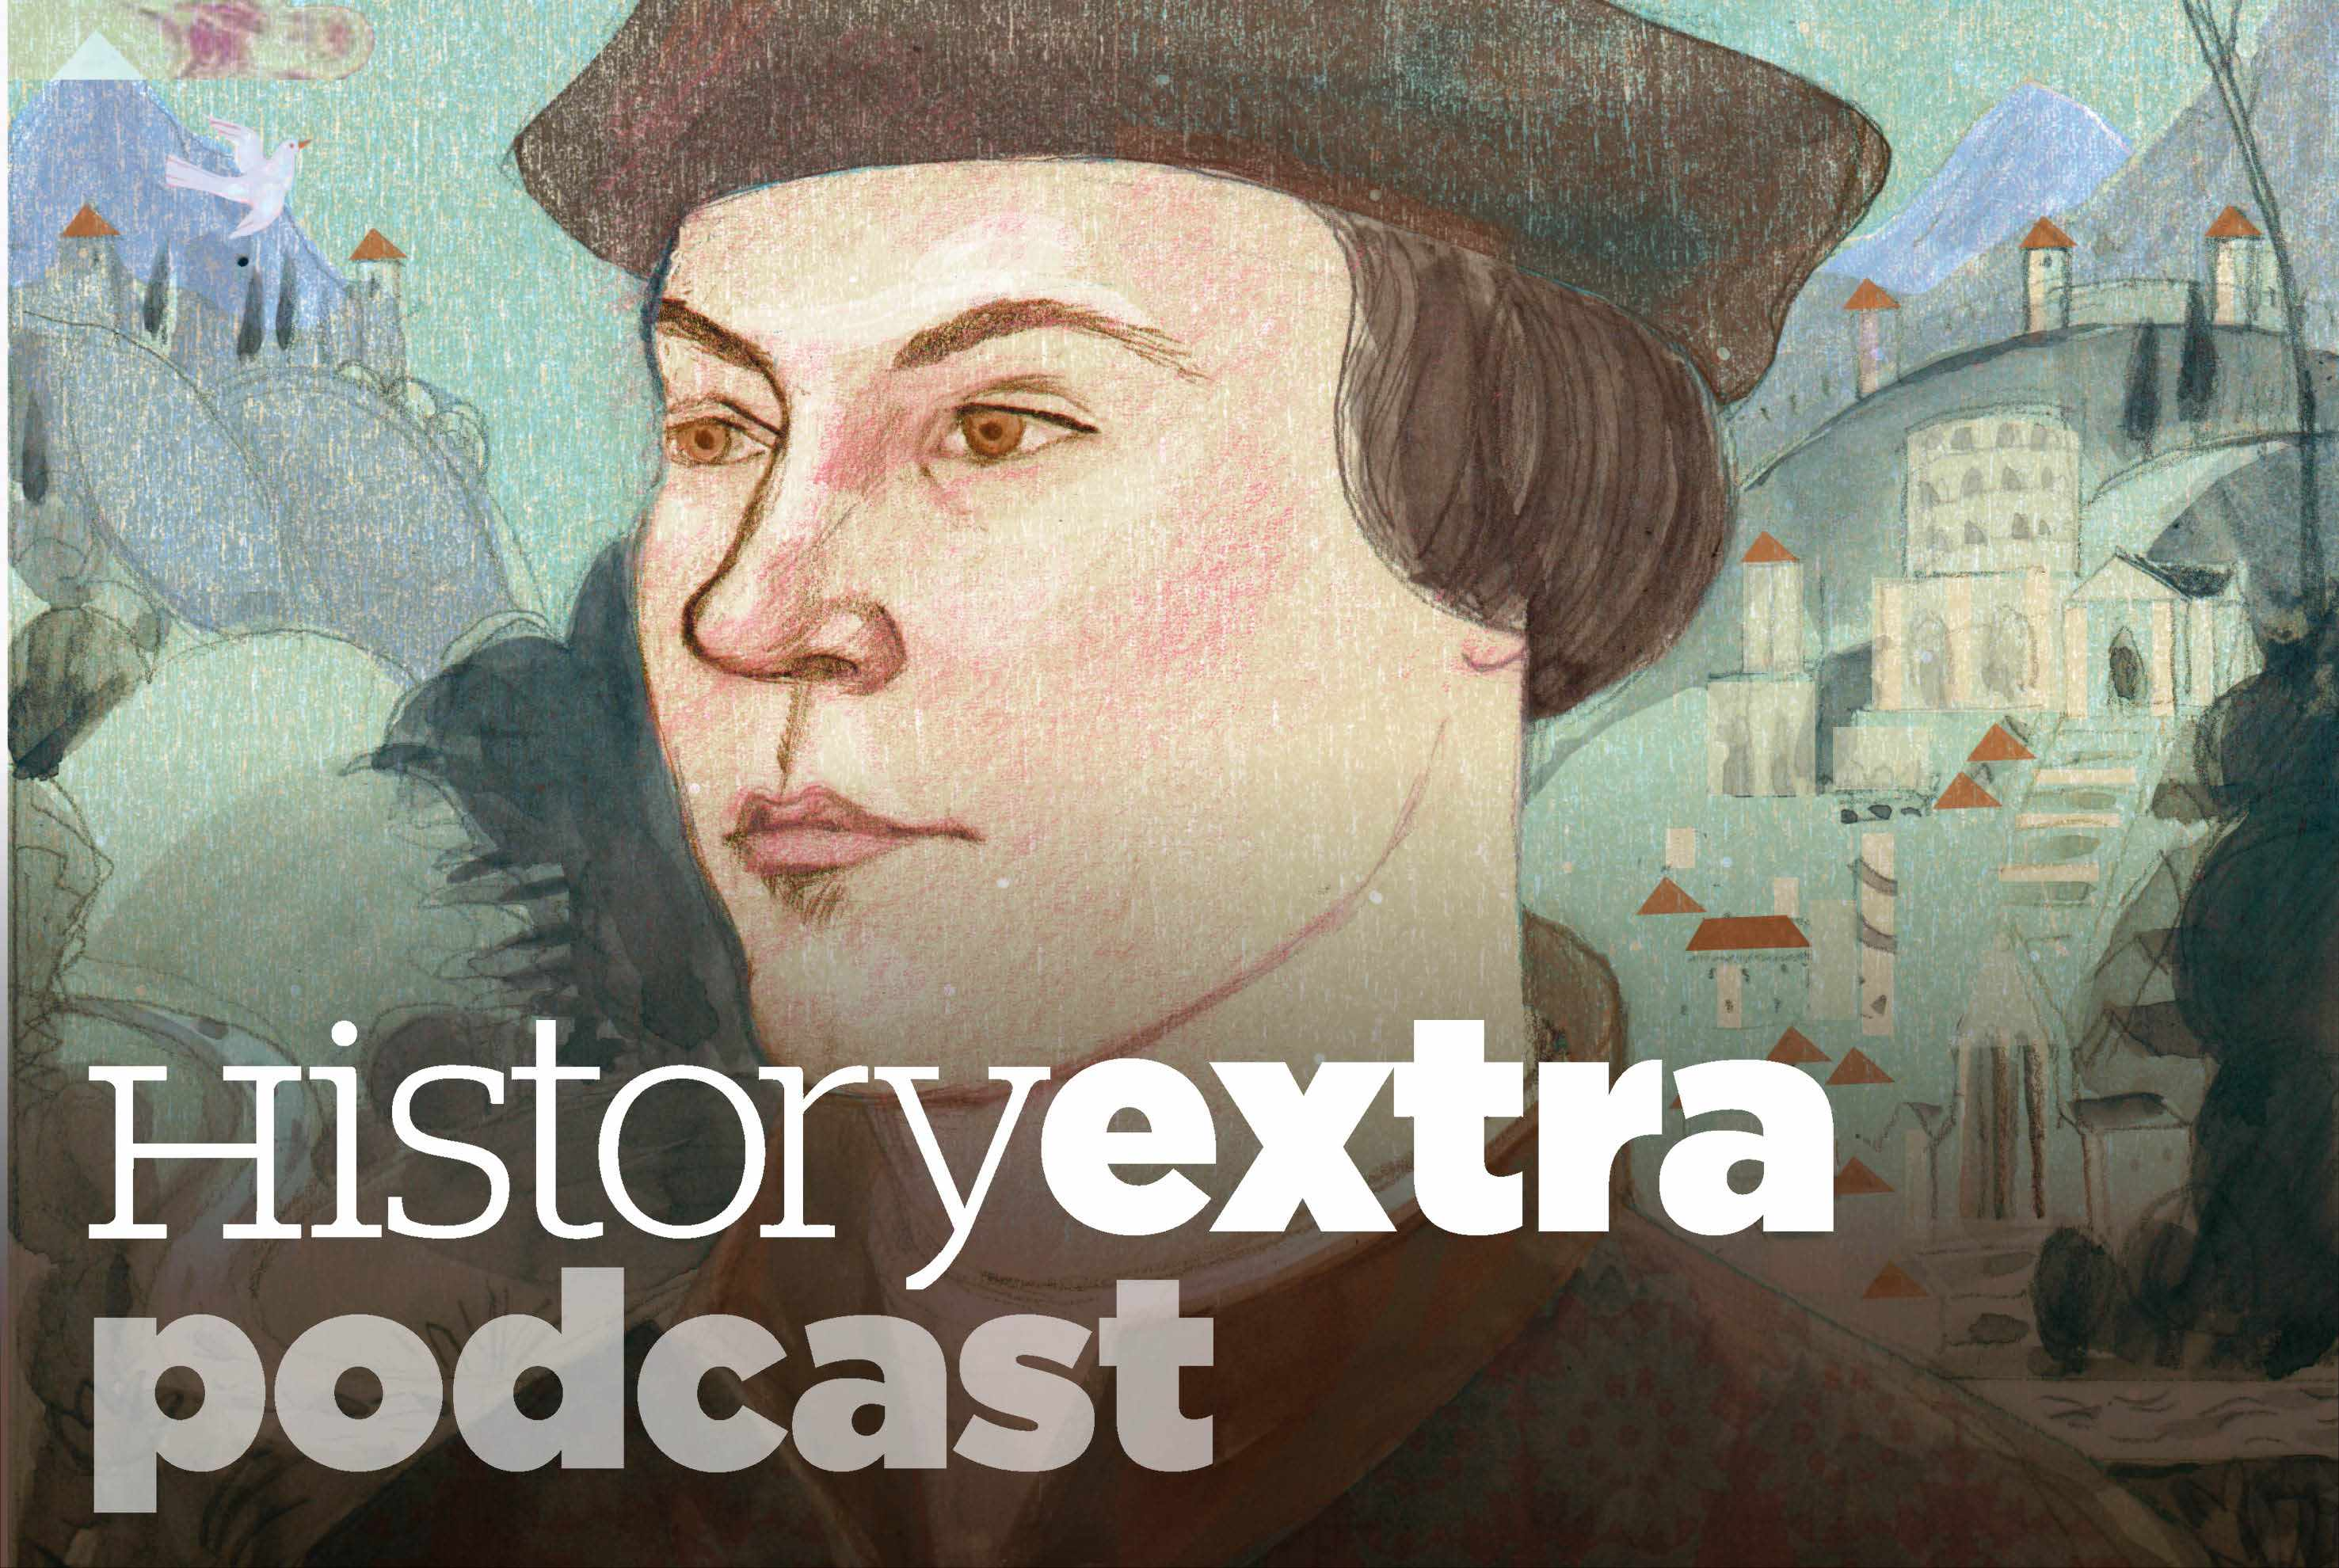 Thomas Cromwell (Illustrated by Sarah Young)